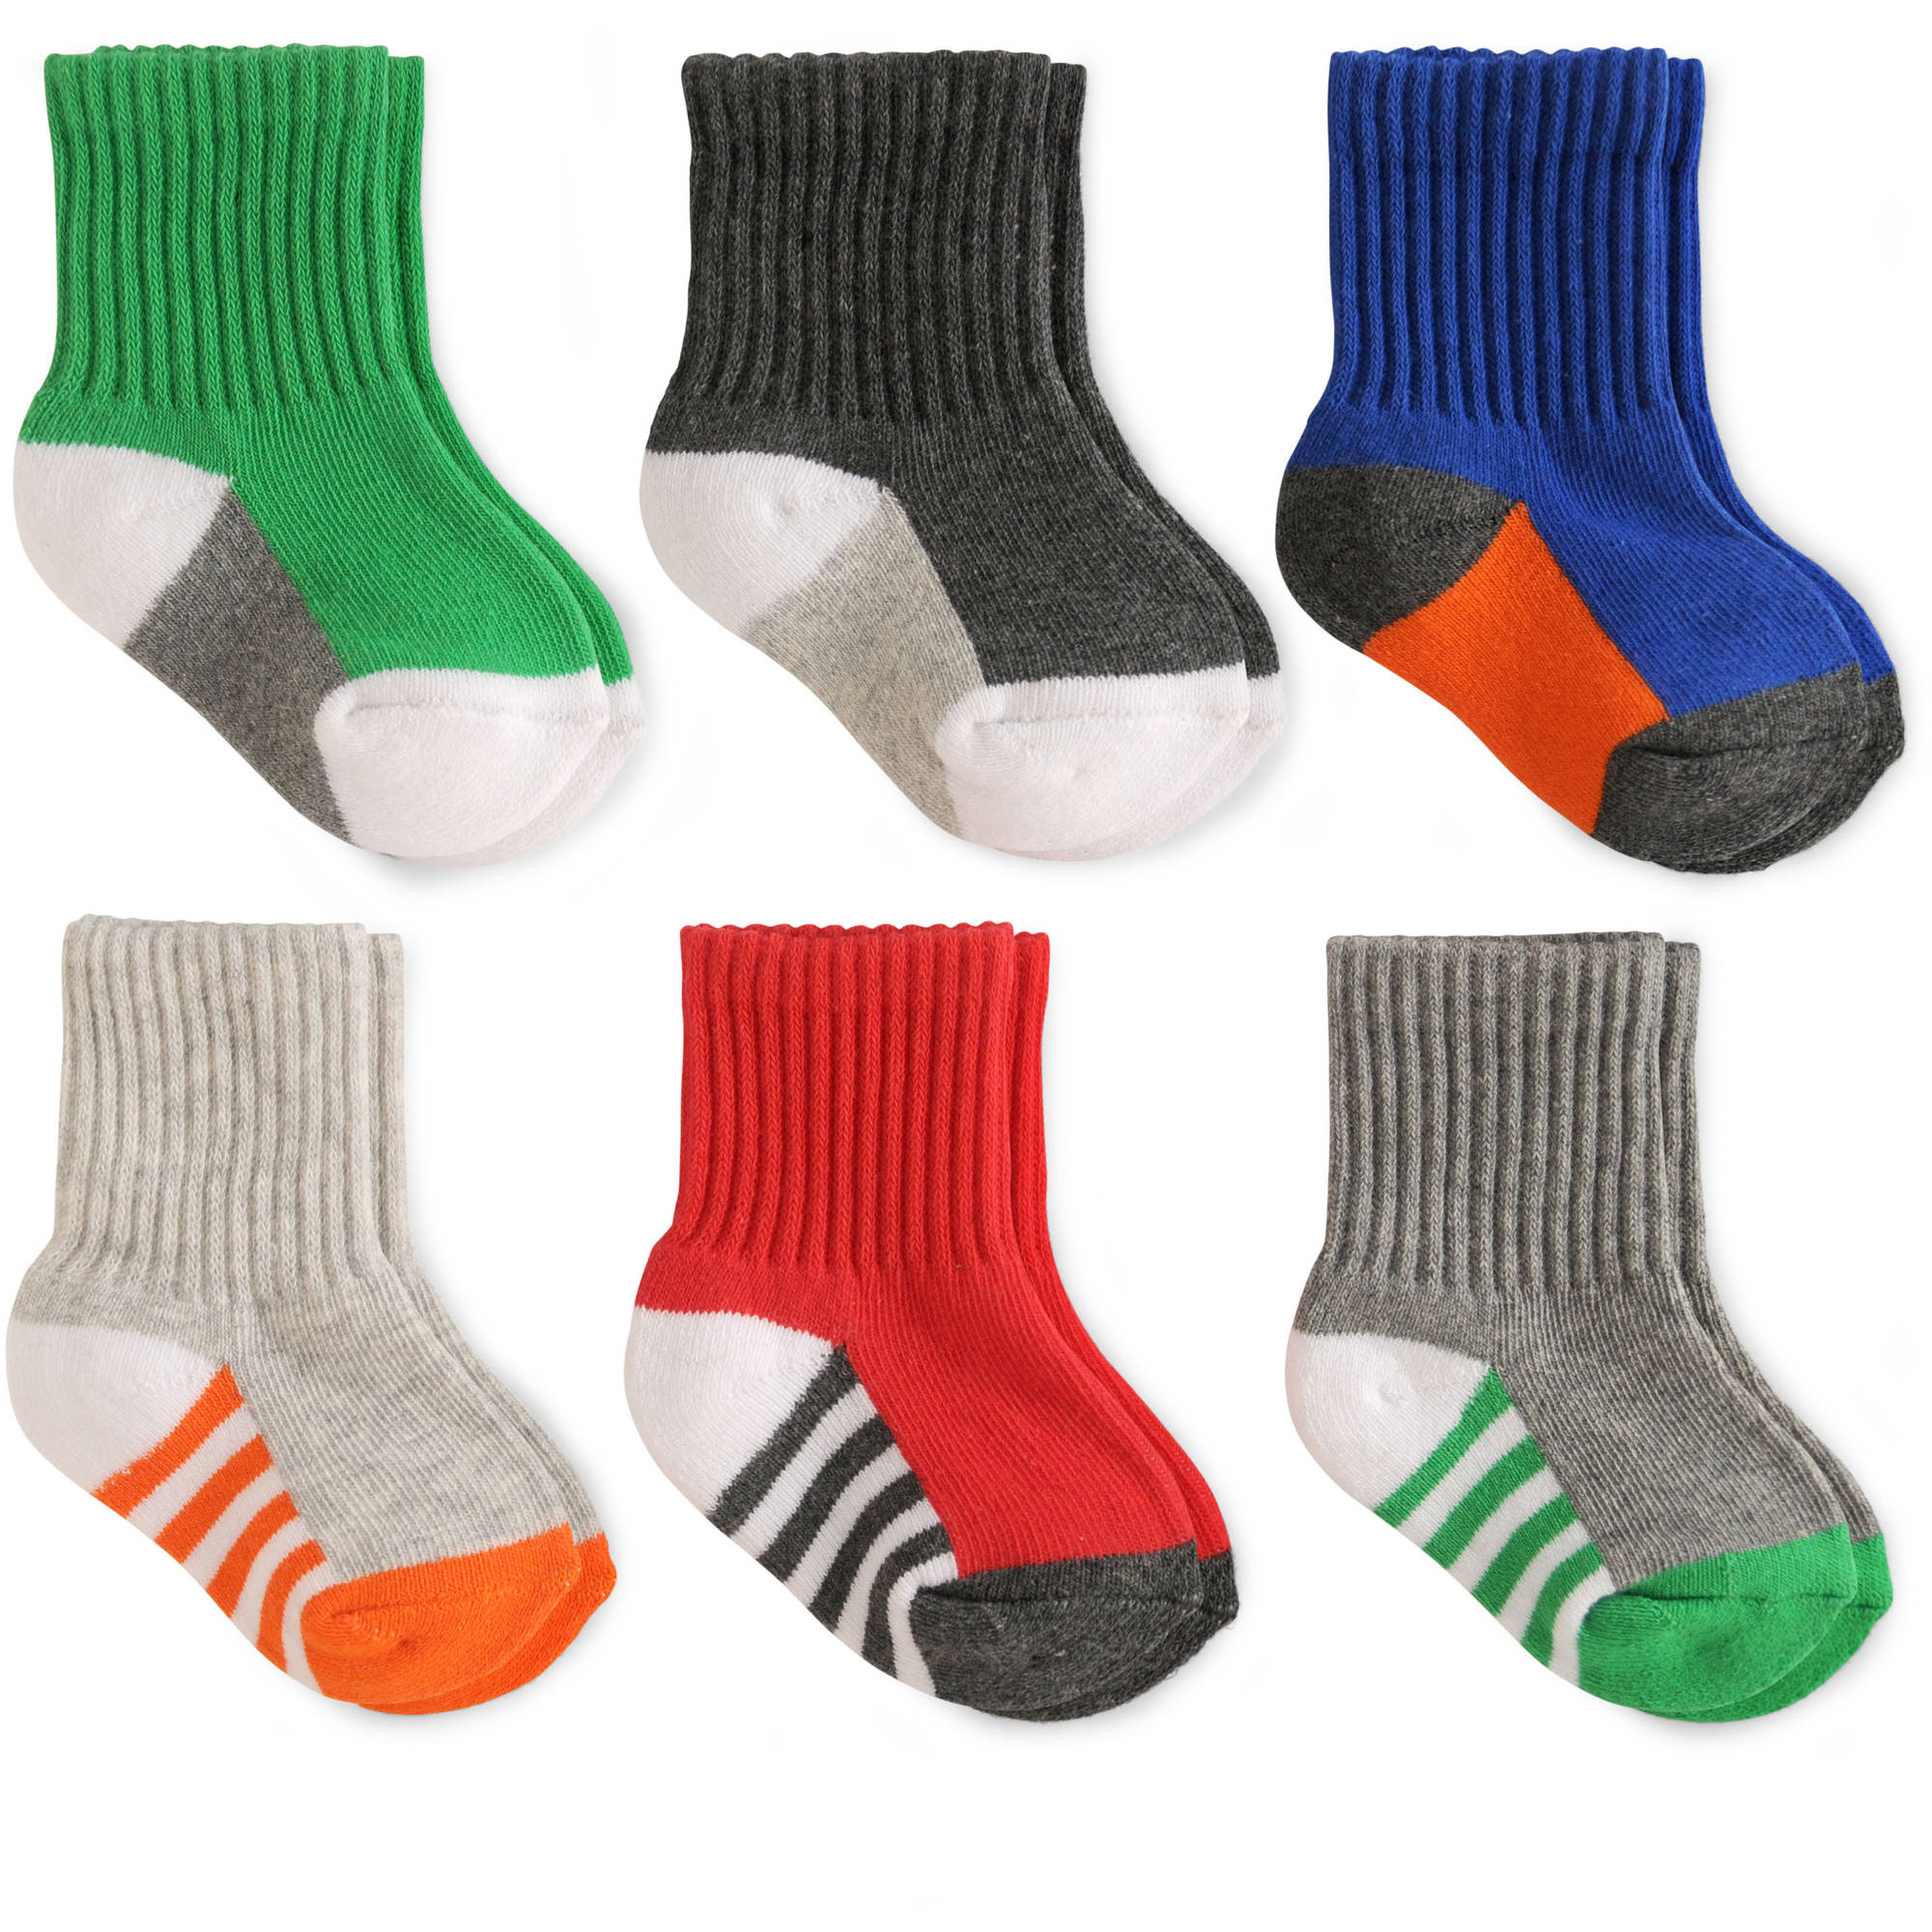 Garanimals Baby Toddler Boy Assorted Socks, 6-Pack